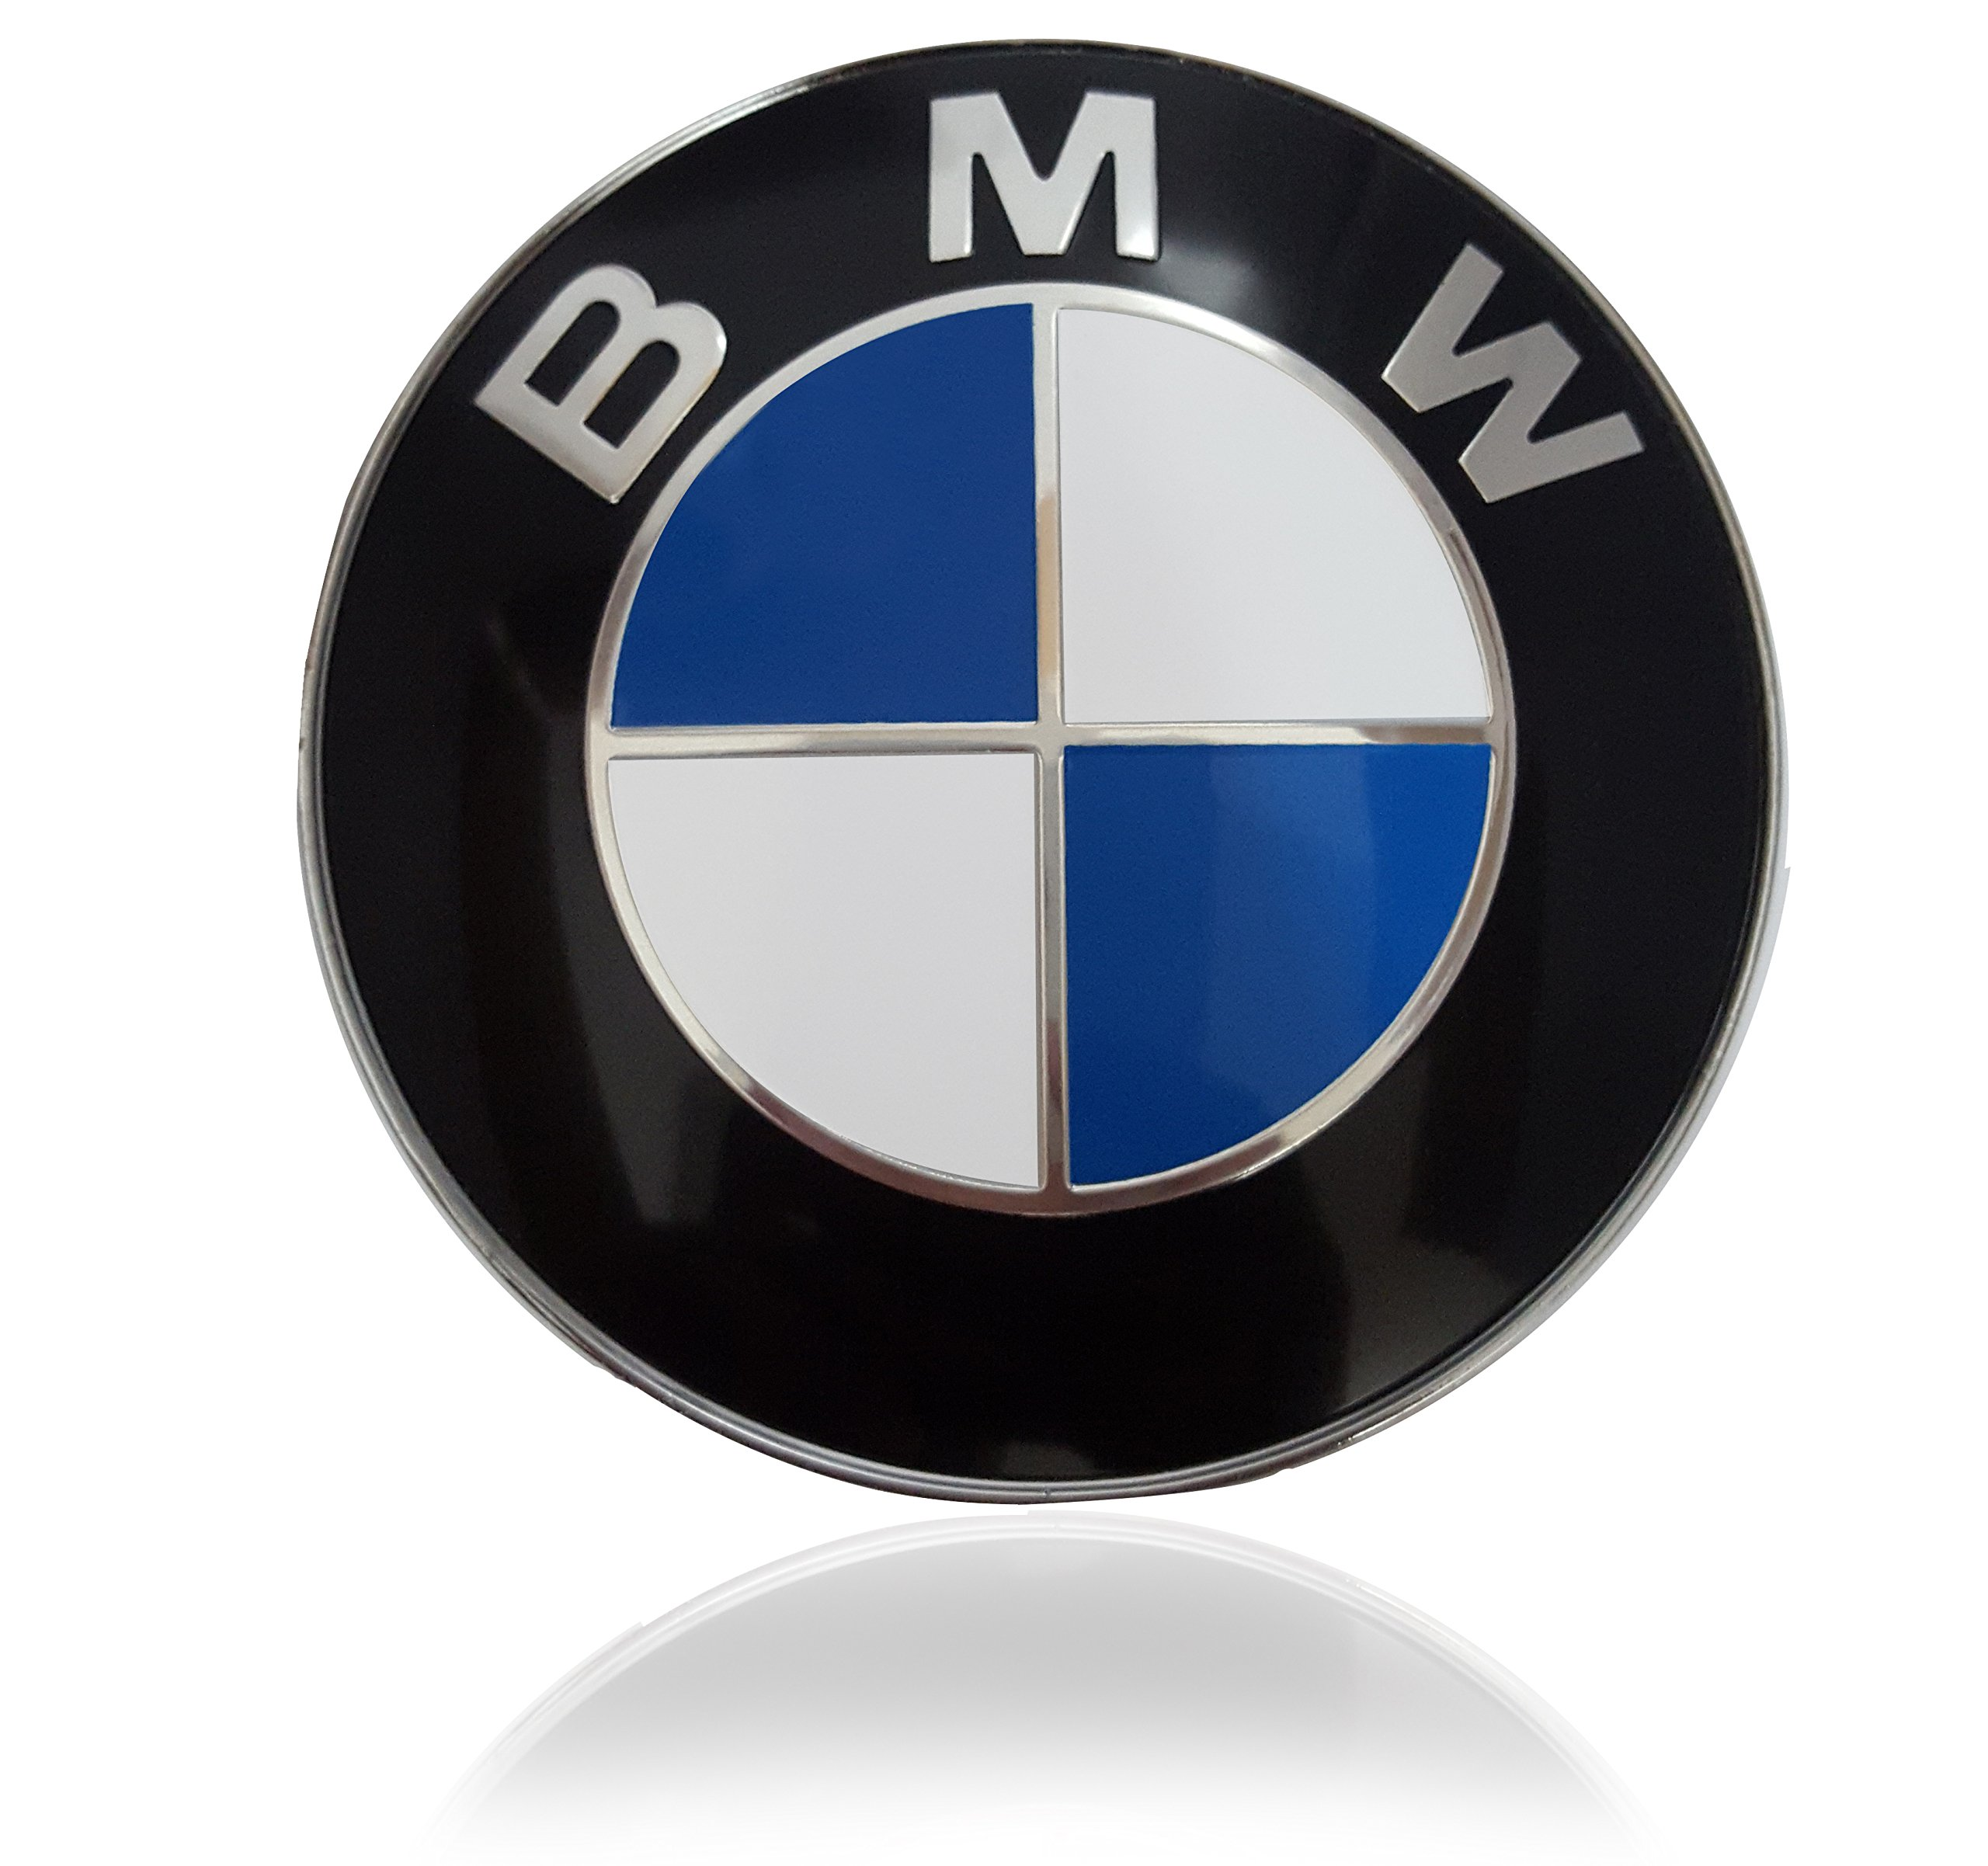 Bmw Emblem High Quality Logo Replacement For Hood Trunk 82mm For All Models B Chickadee